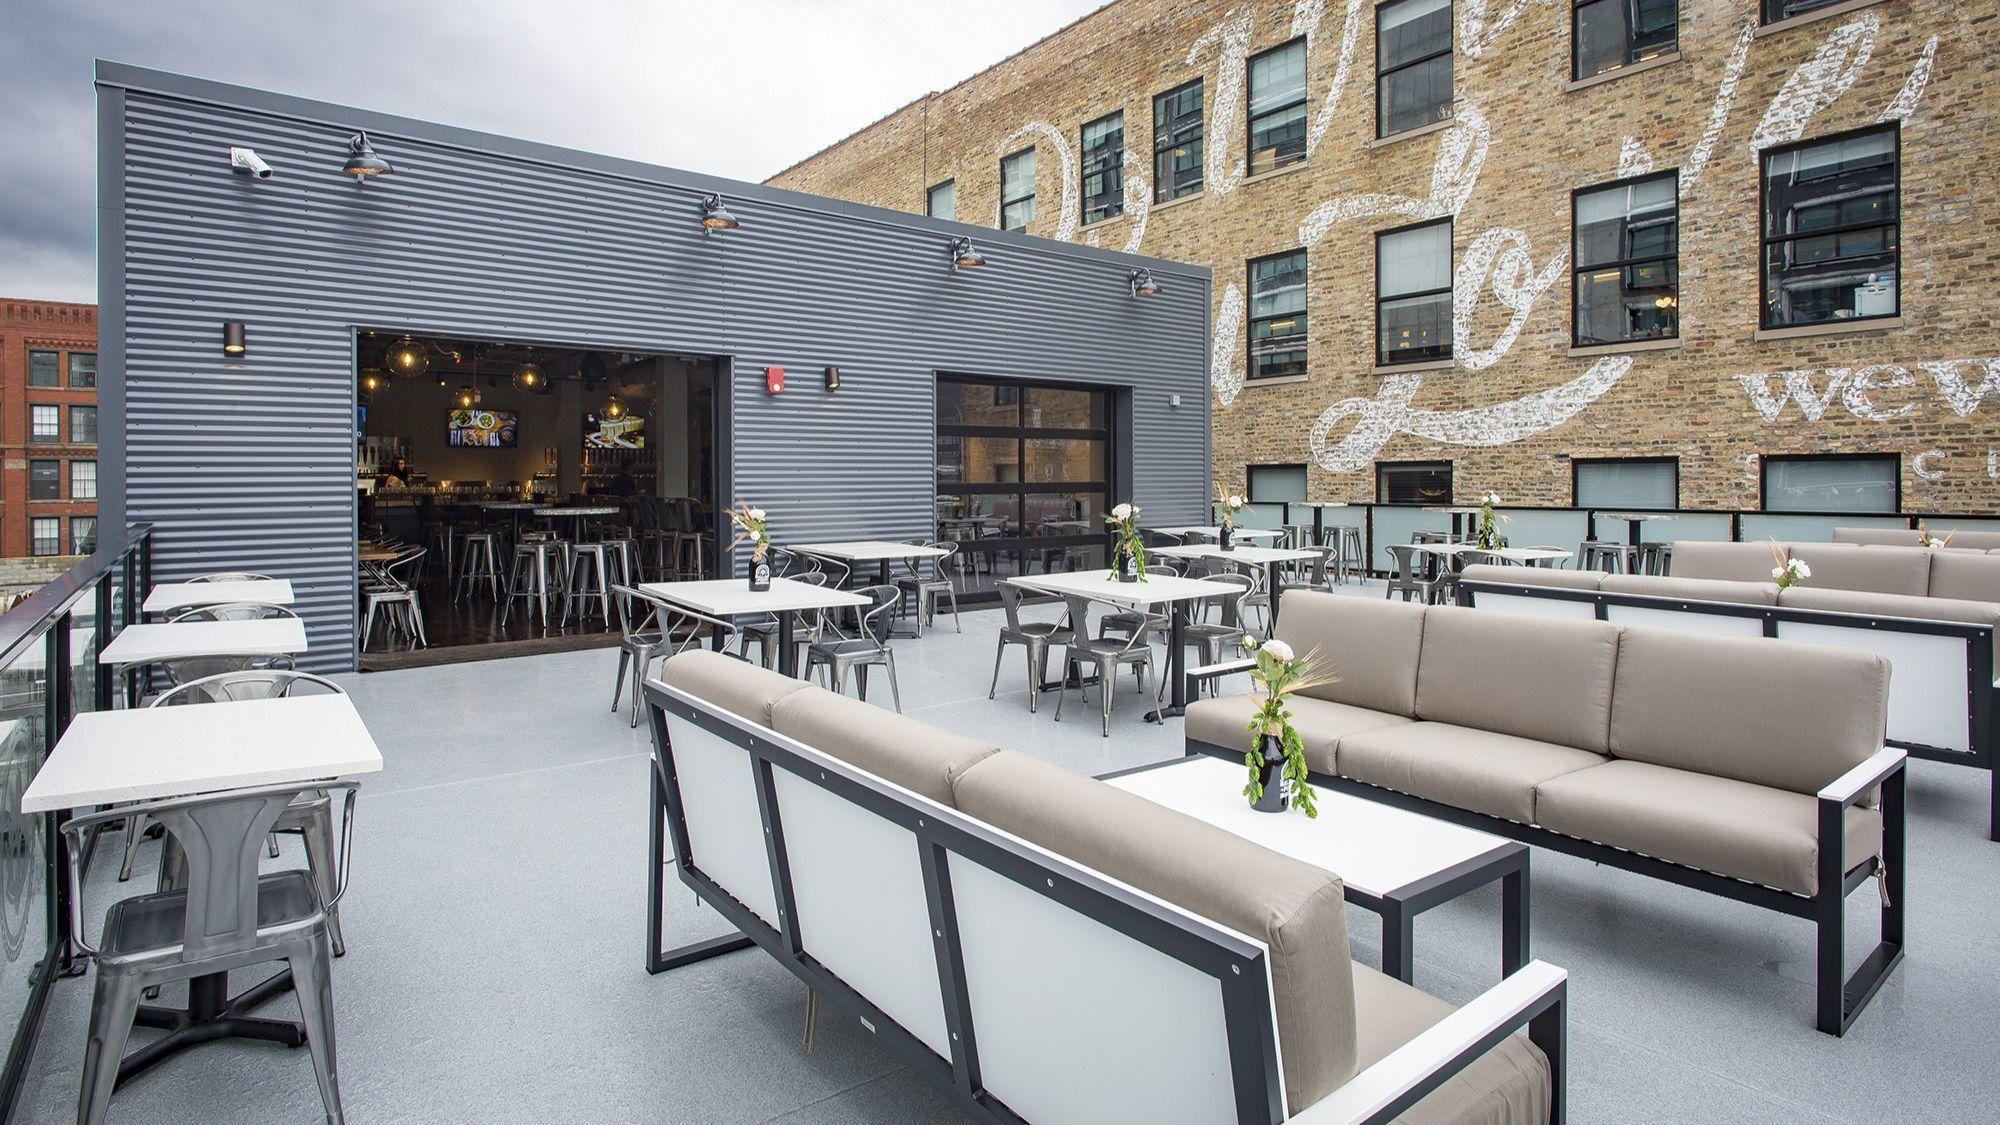 Ballast Point Debuts Rooftop Patio This Weekend In Fulton Market   RedEye  Chicago